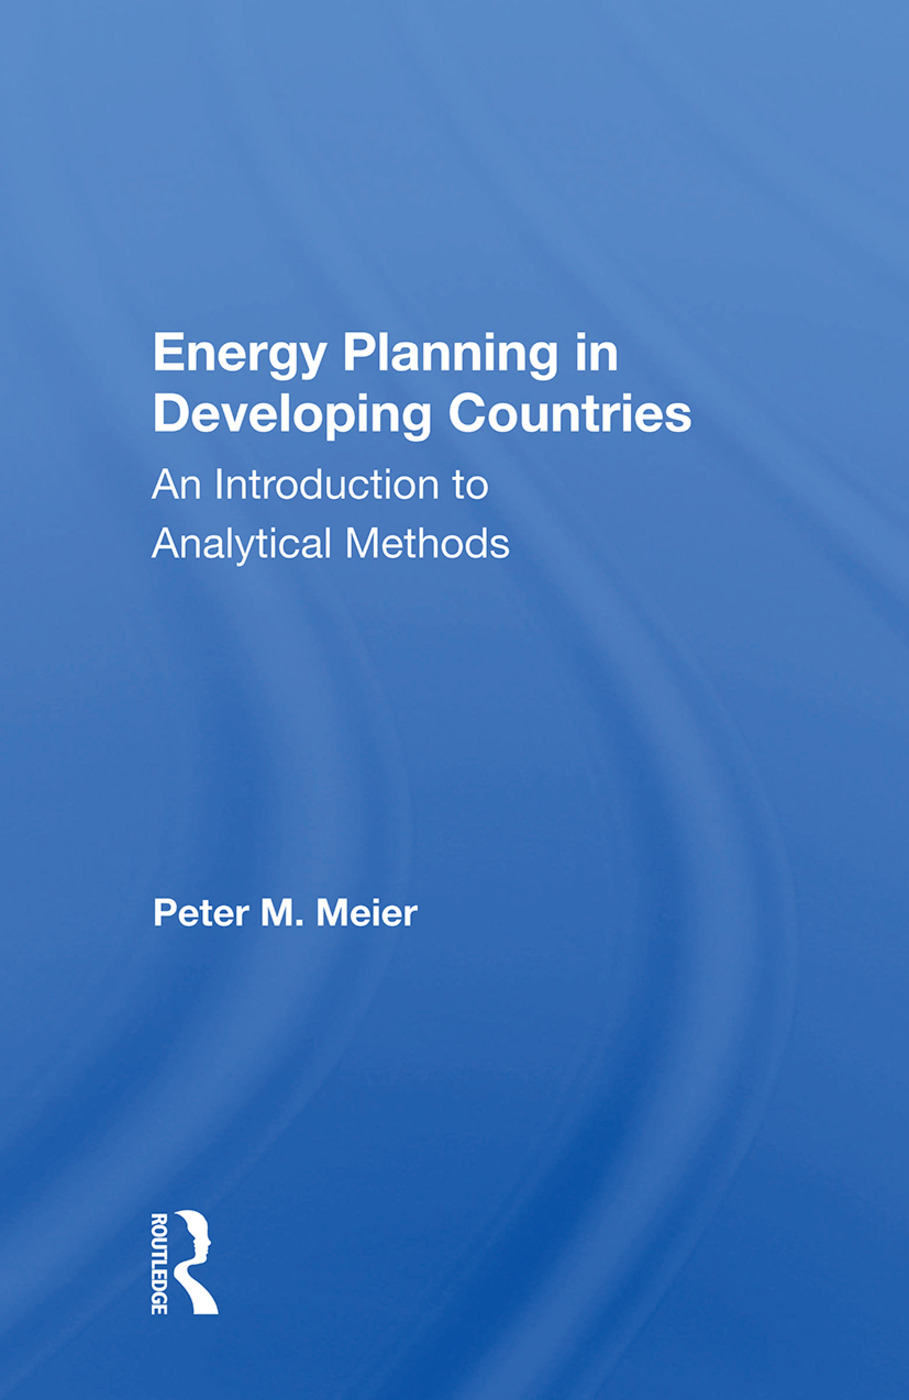 Energy Planning In Developing Countries: An Introduction To Analytical Methods book cover